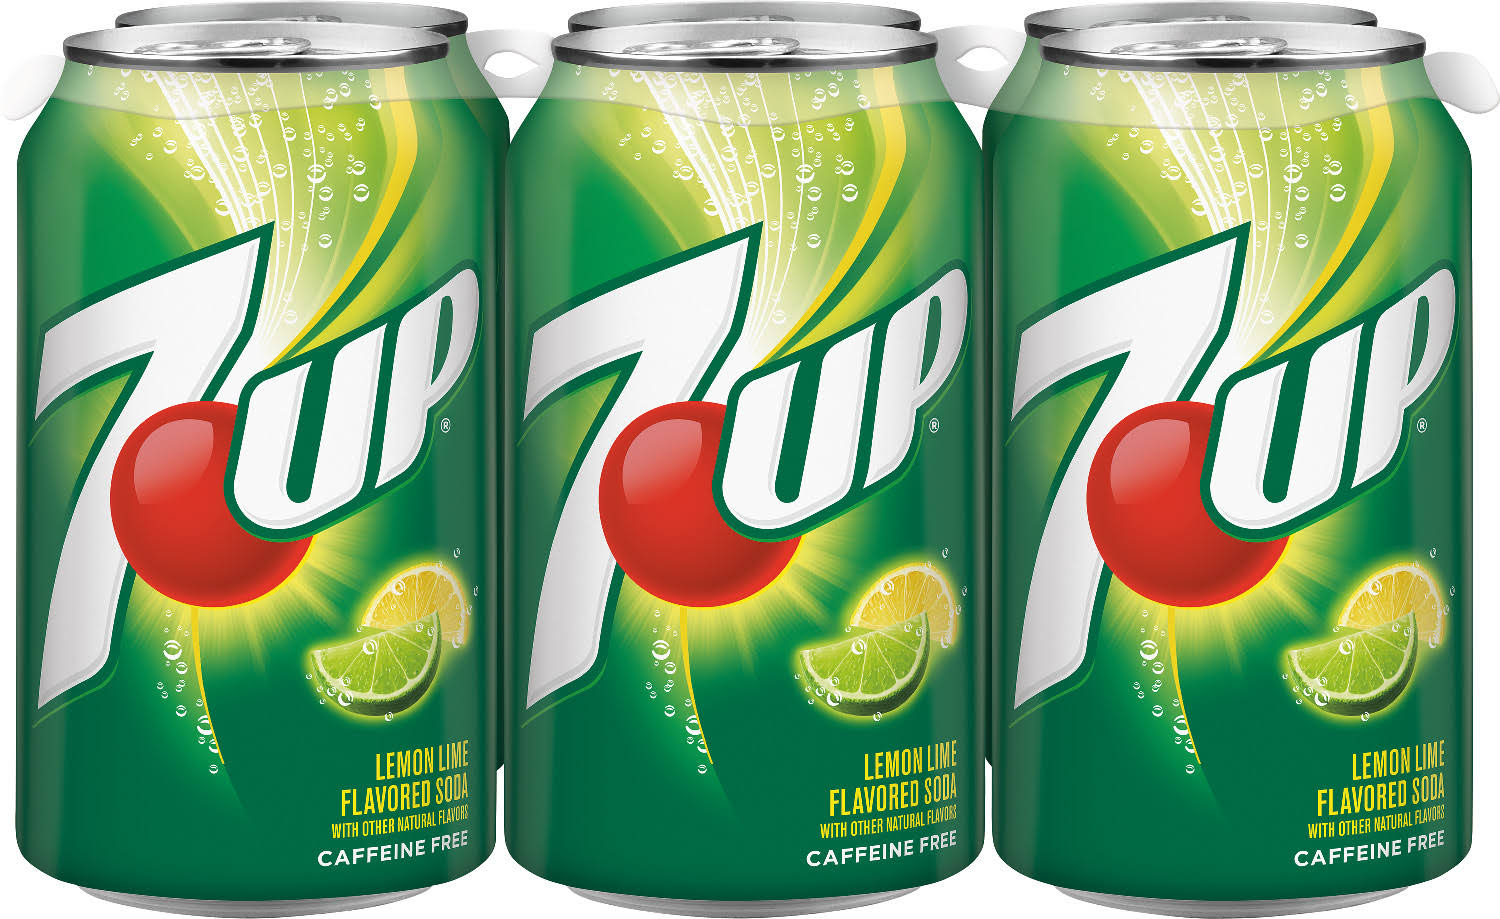 7UP, 12 fl oz cans, 6 pack